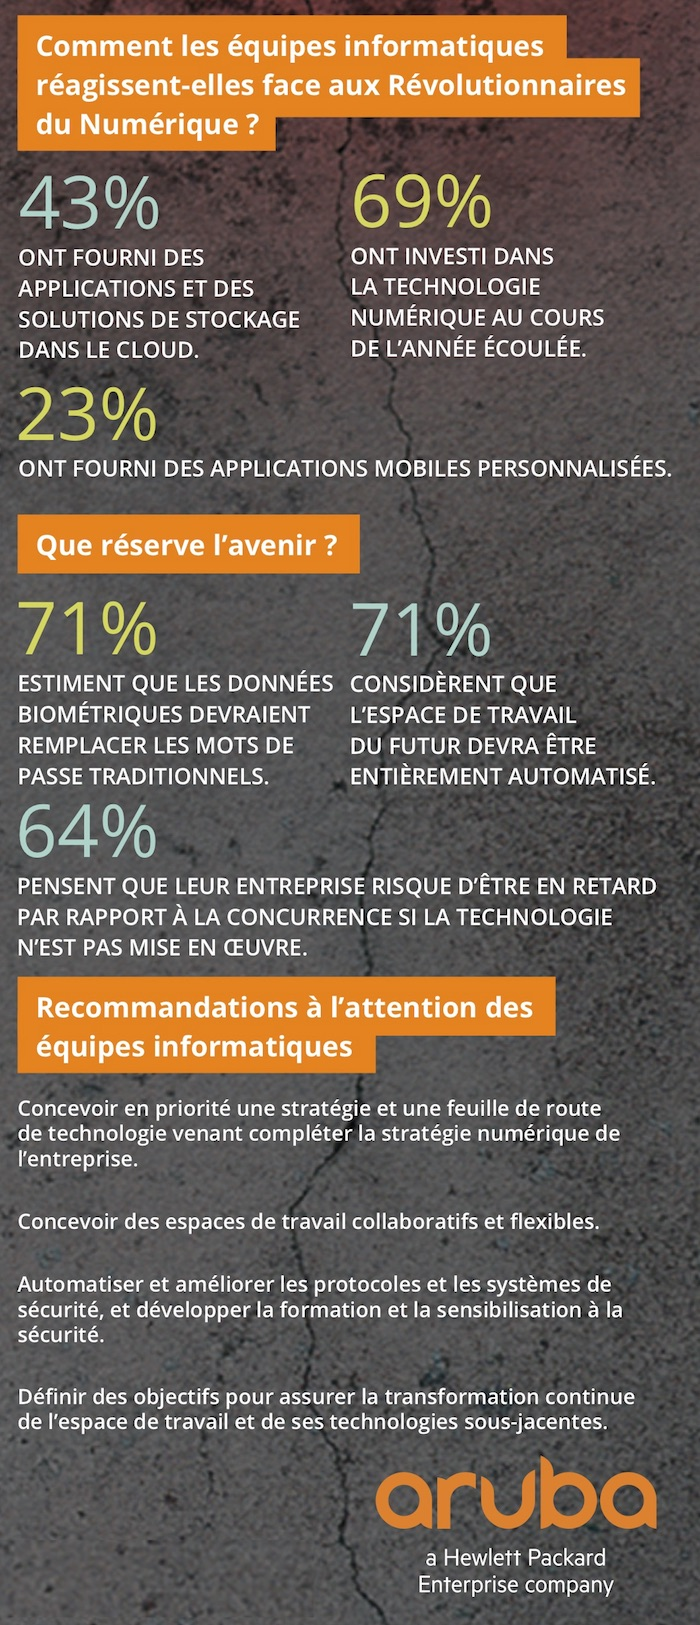 Aruba_Digital Workplace_Infographic_French-3